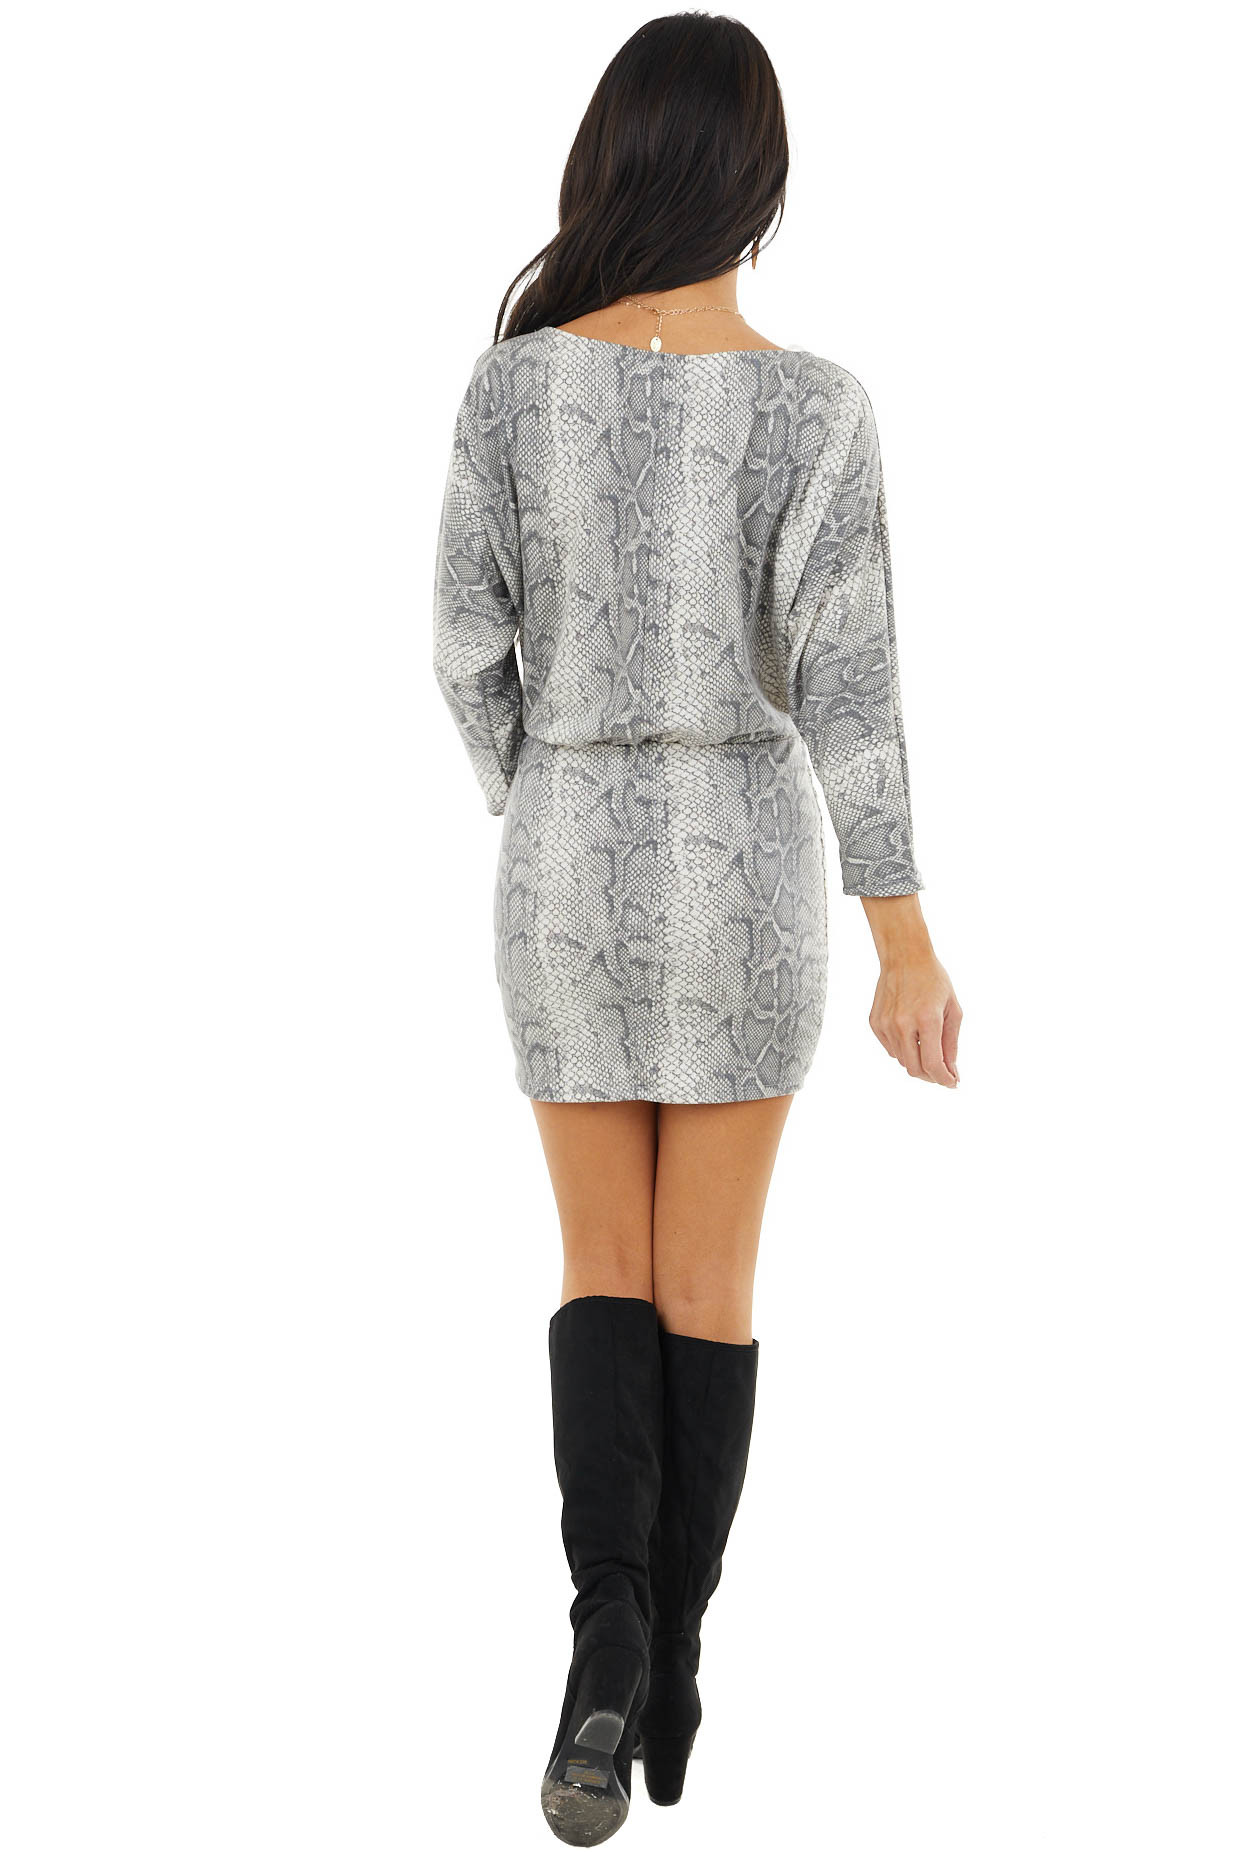 Off White and Stone Long Sleeve Snakeskin Mini Dress